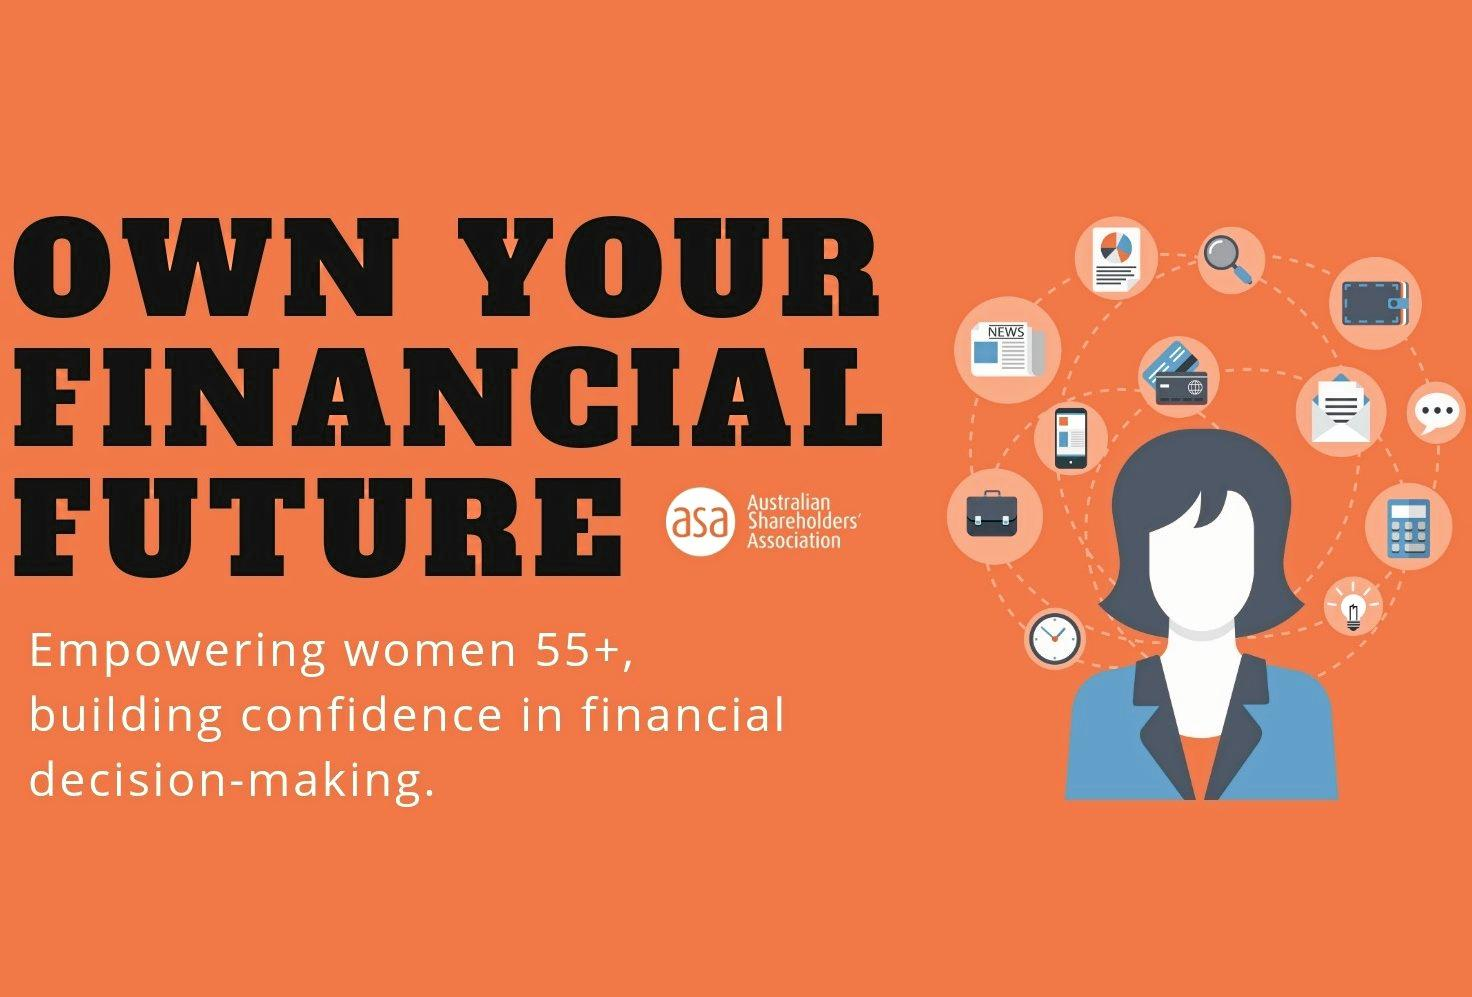 Australian Shareholder's Association are running its new Own Your Financial Future financial literacy program for women over 55, starting in March 2019.